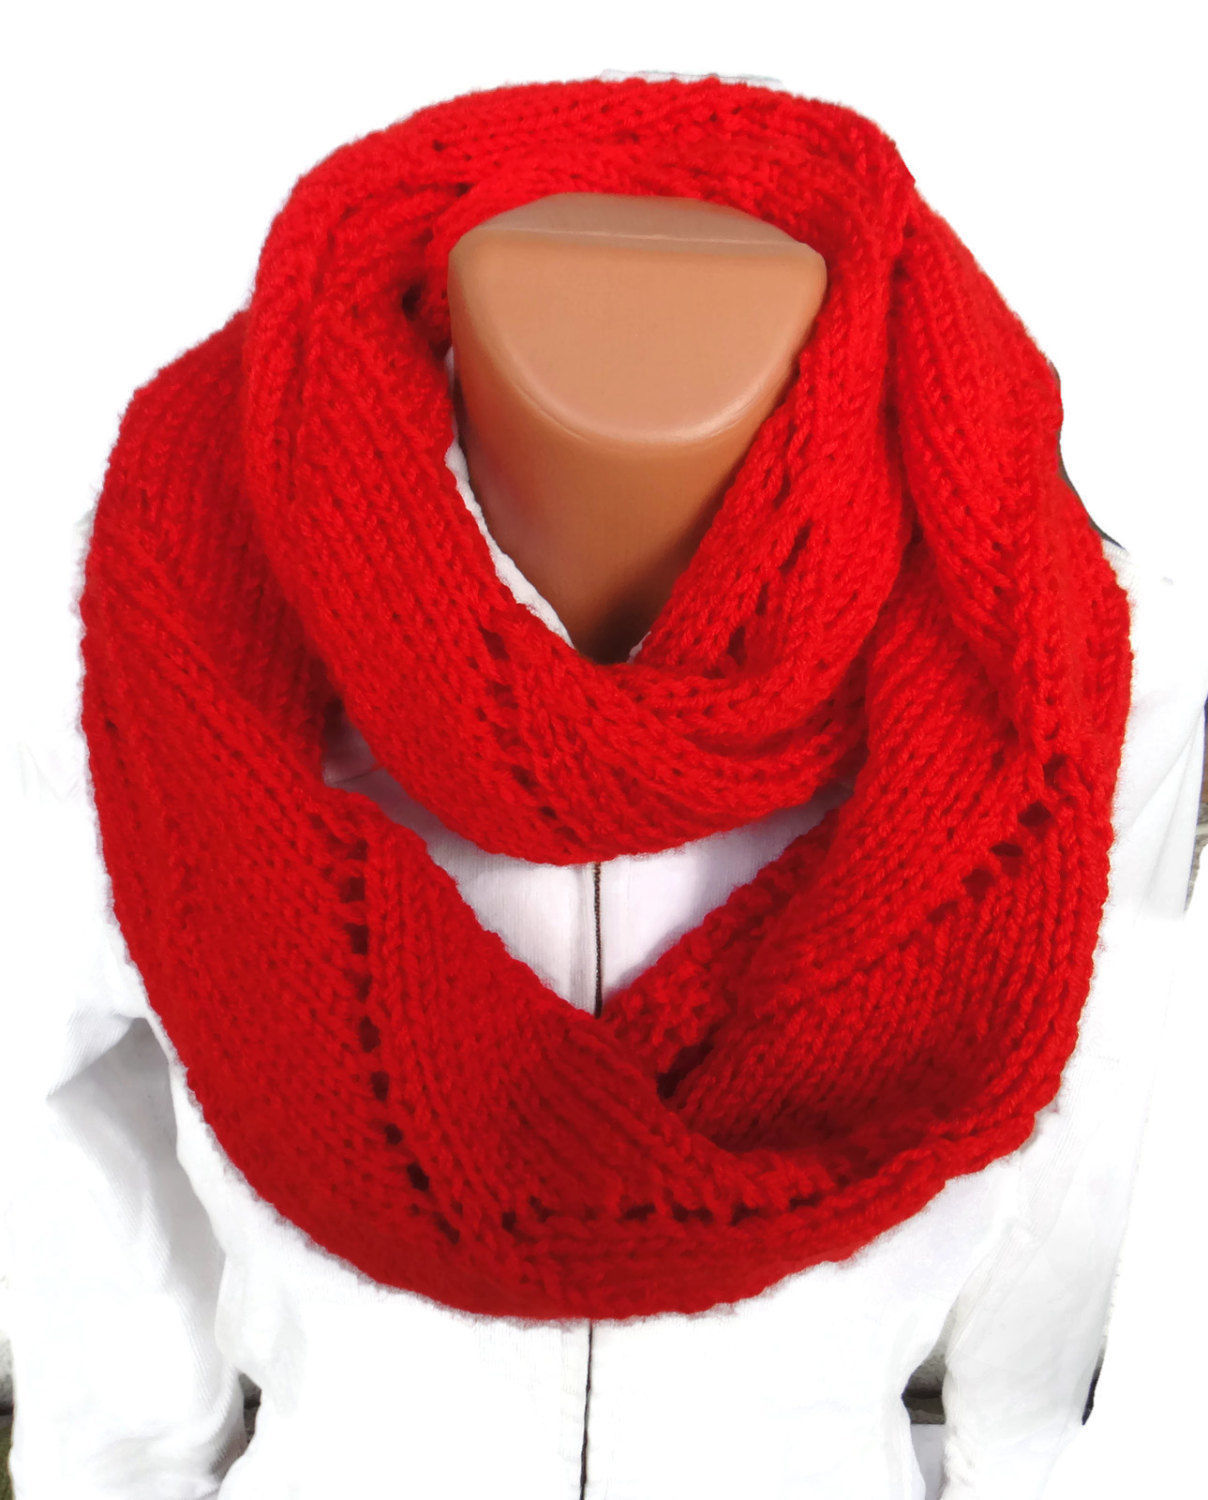 Soft and warm long hand knit infinity circle lady's scarf. Free Shipping! image 1